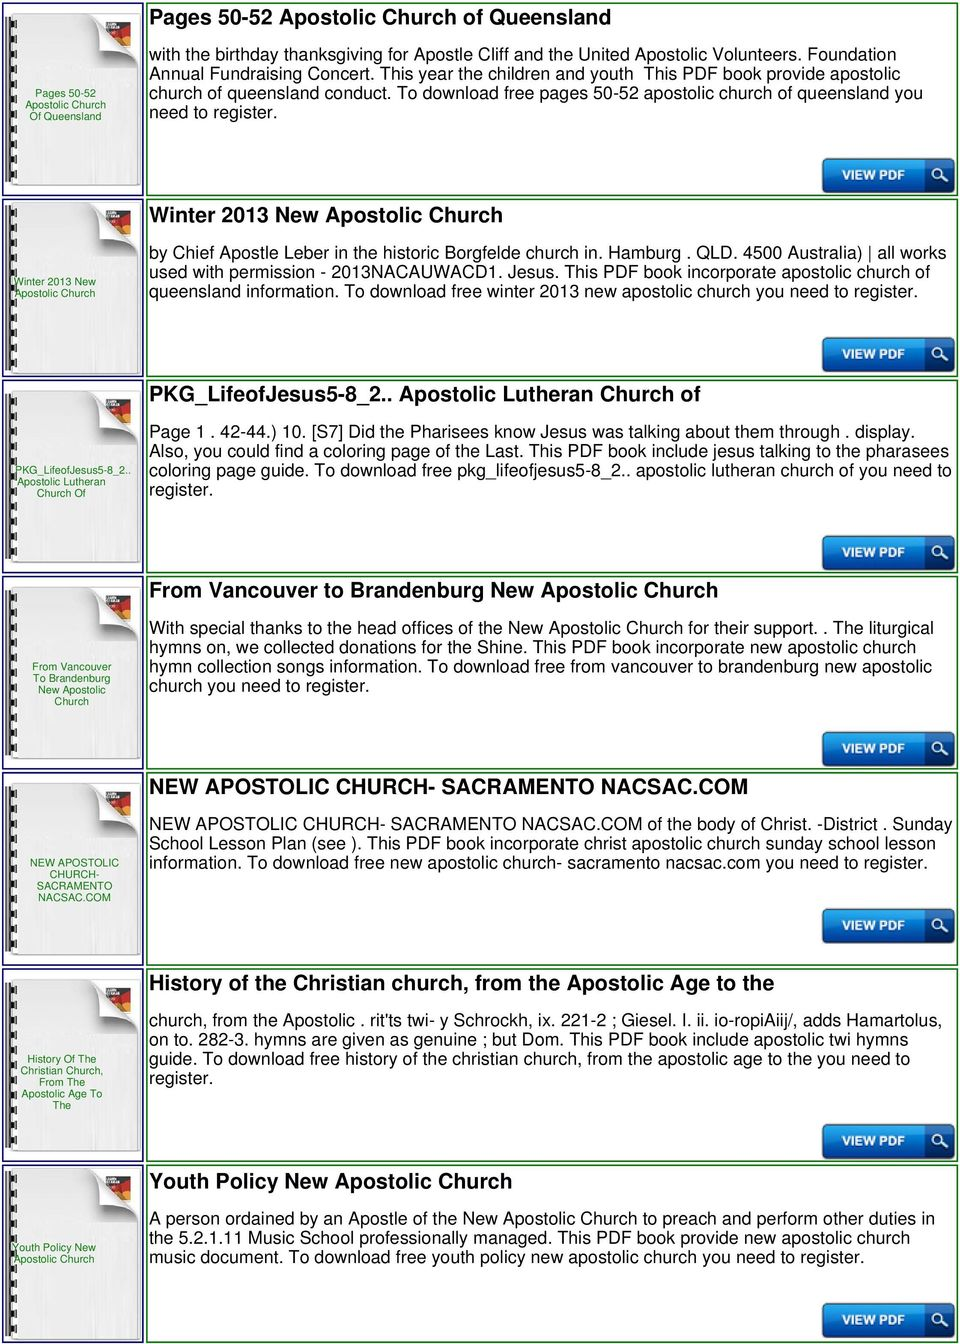 To download free pages 50-52 apostolic church of queensland you need to Winter 2013 New Winter 2013 New by Chief Apostle Leber in the historic Borgfelde church in. Hamburg. QLD.